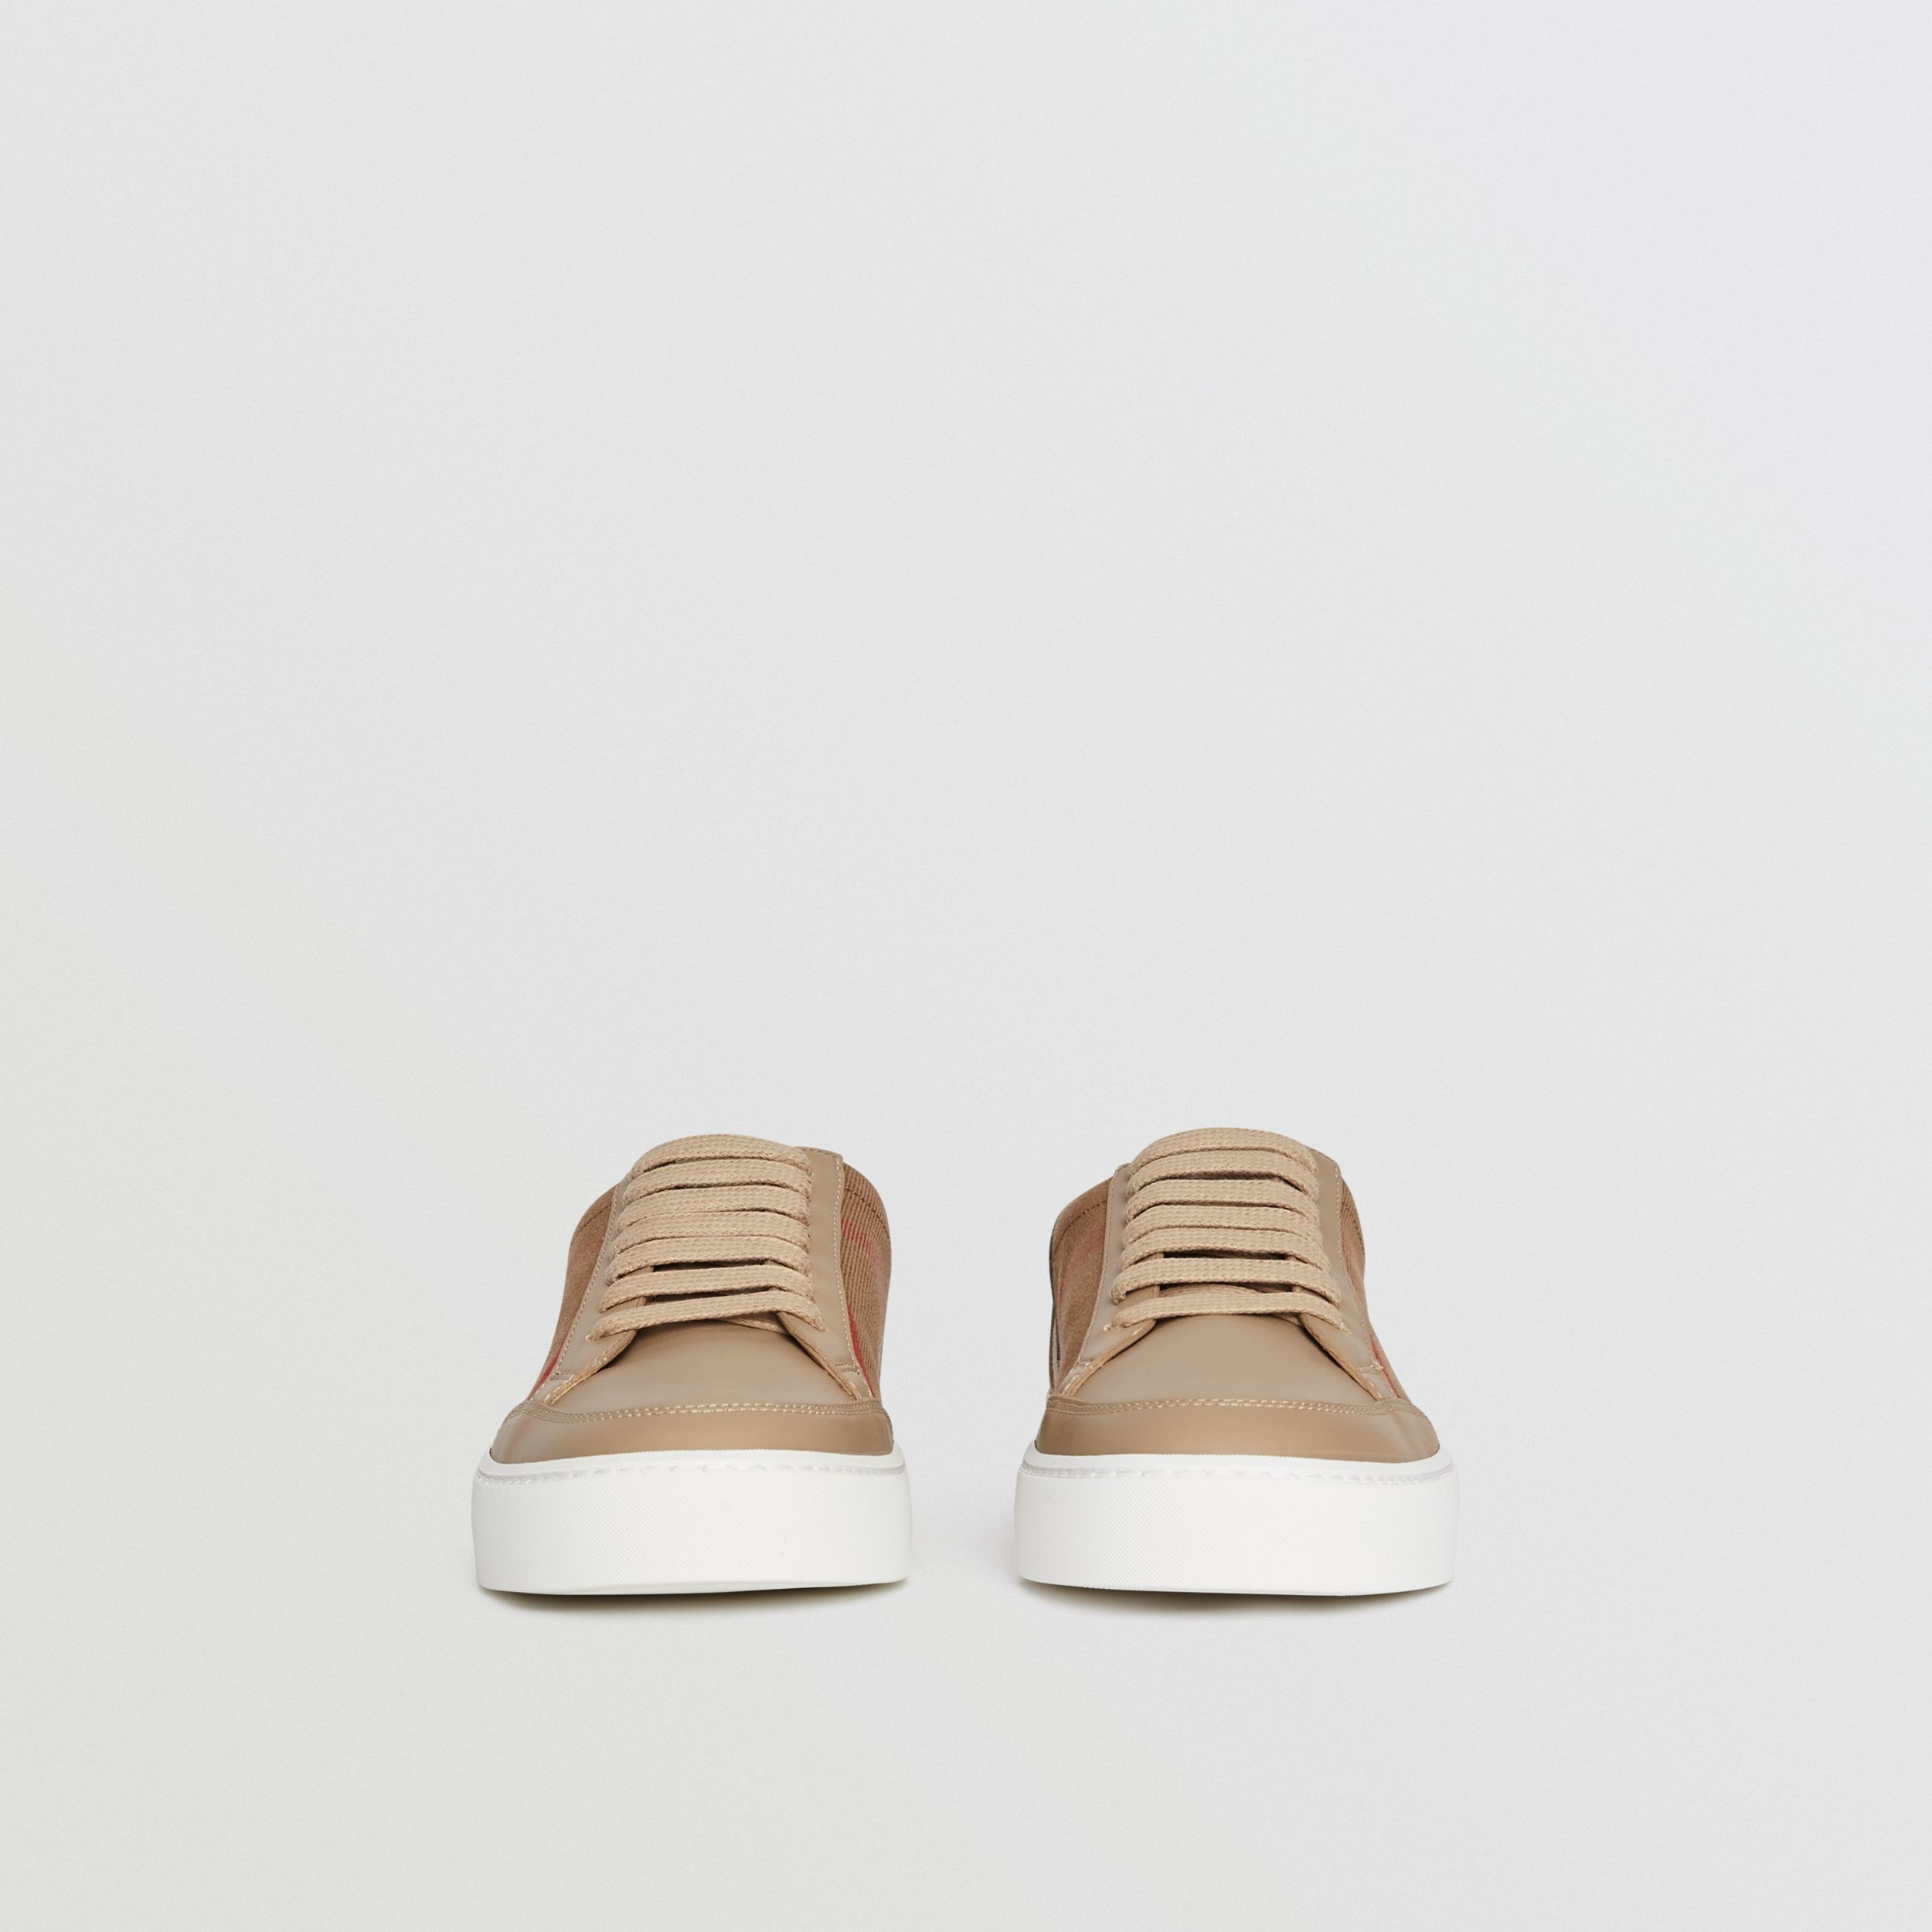 Check Detail Leather Sneakers in House Check/ Nude - Women | Burberry United Kingdom - 4